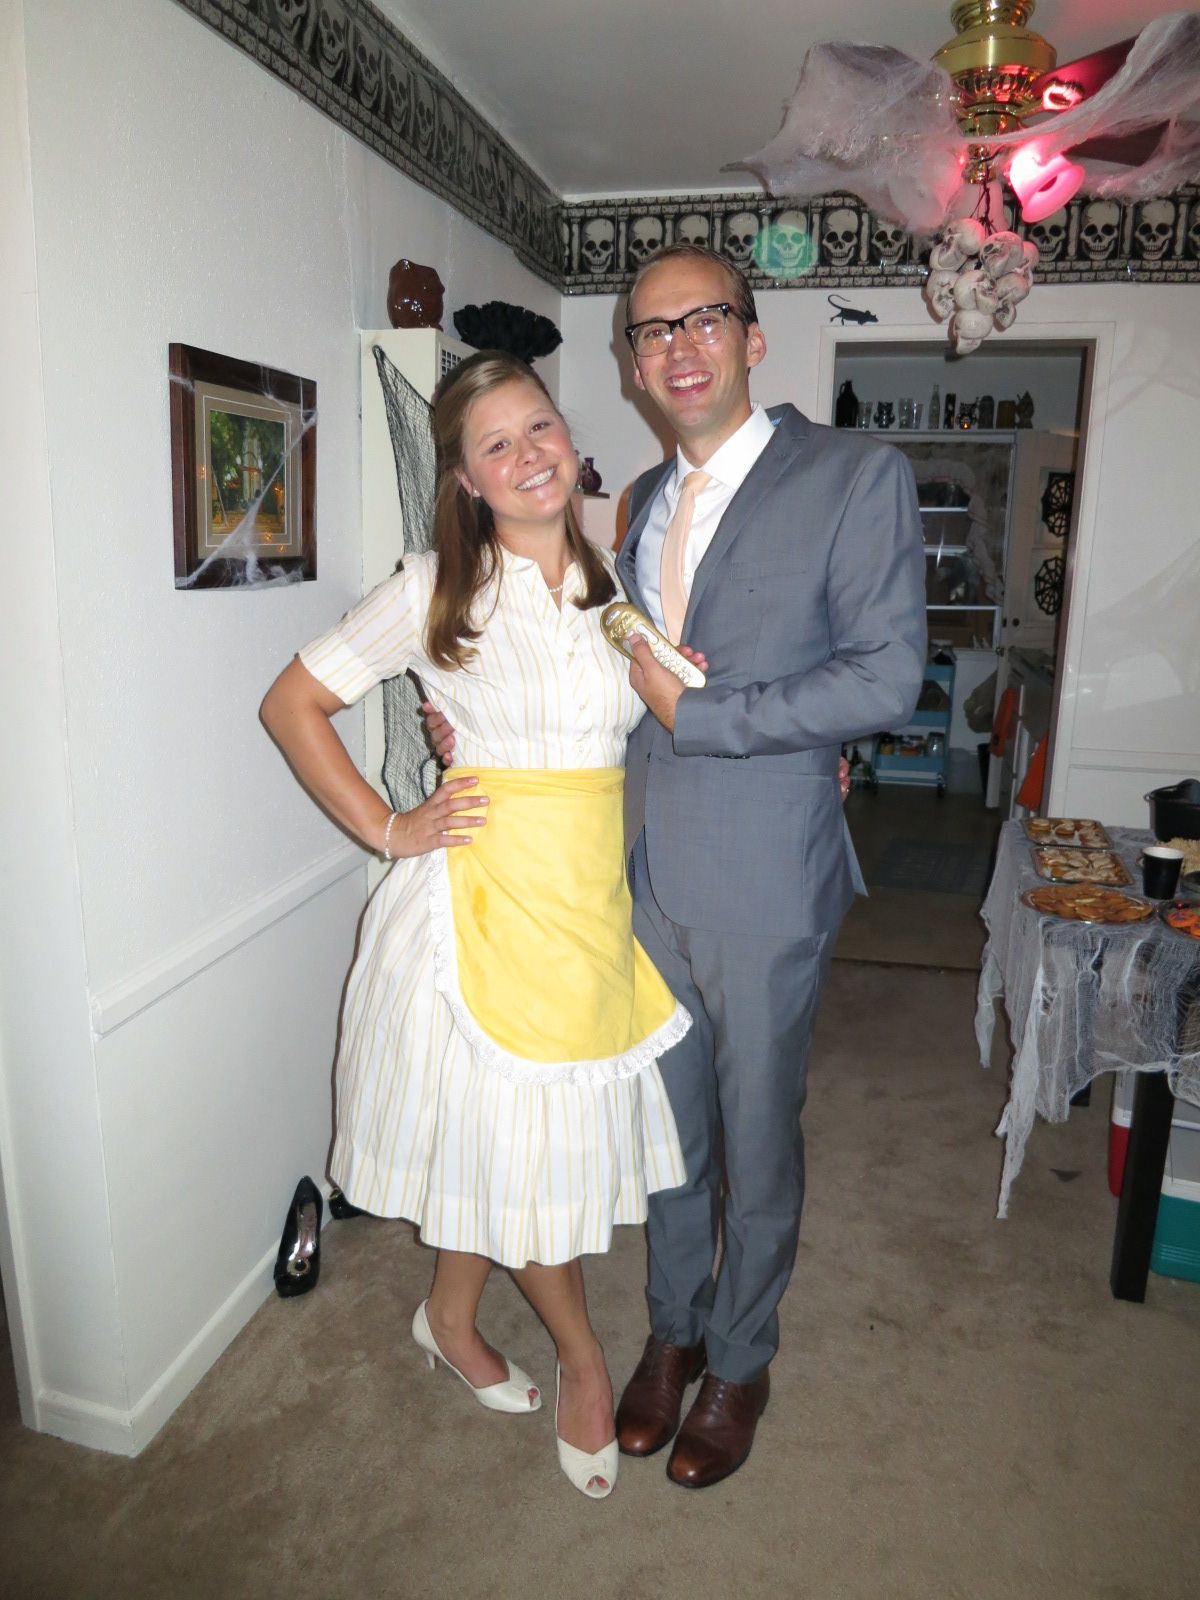 Stepford Wife And Husband S Costume With Personalized Gold Spray Painted Remote